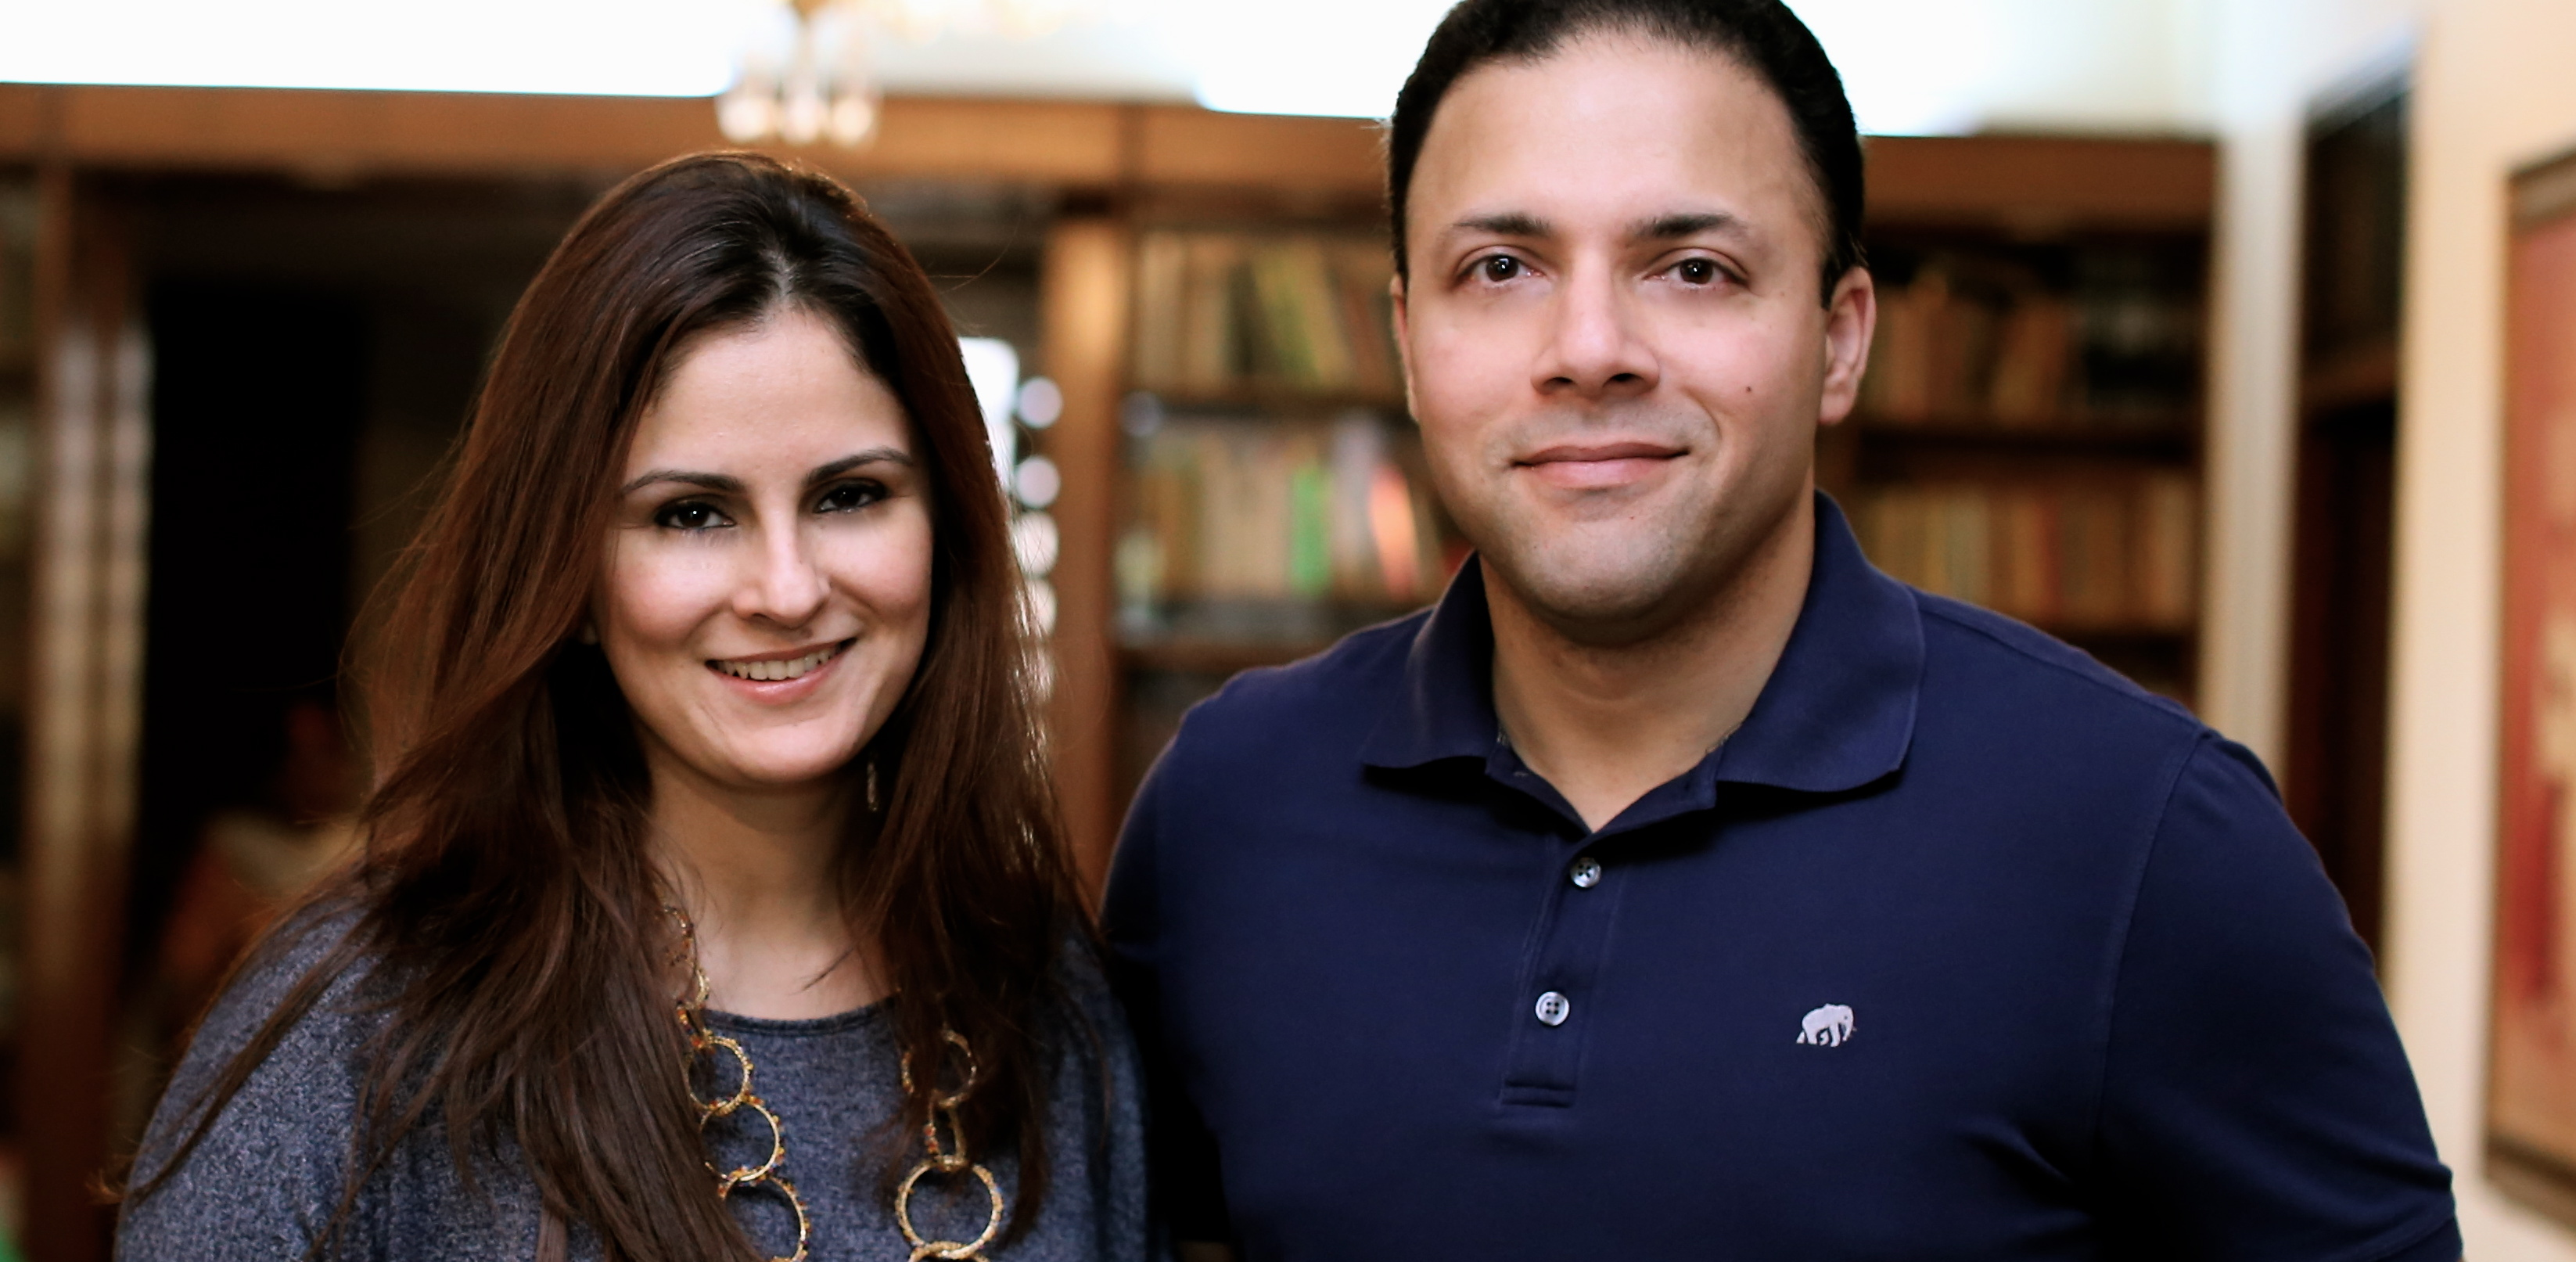 Romana Abdullah of Hopscotch and Haris Syed